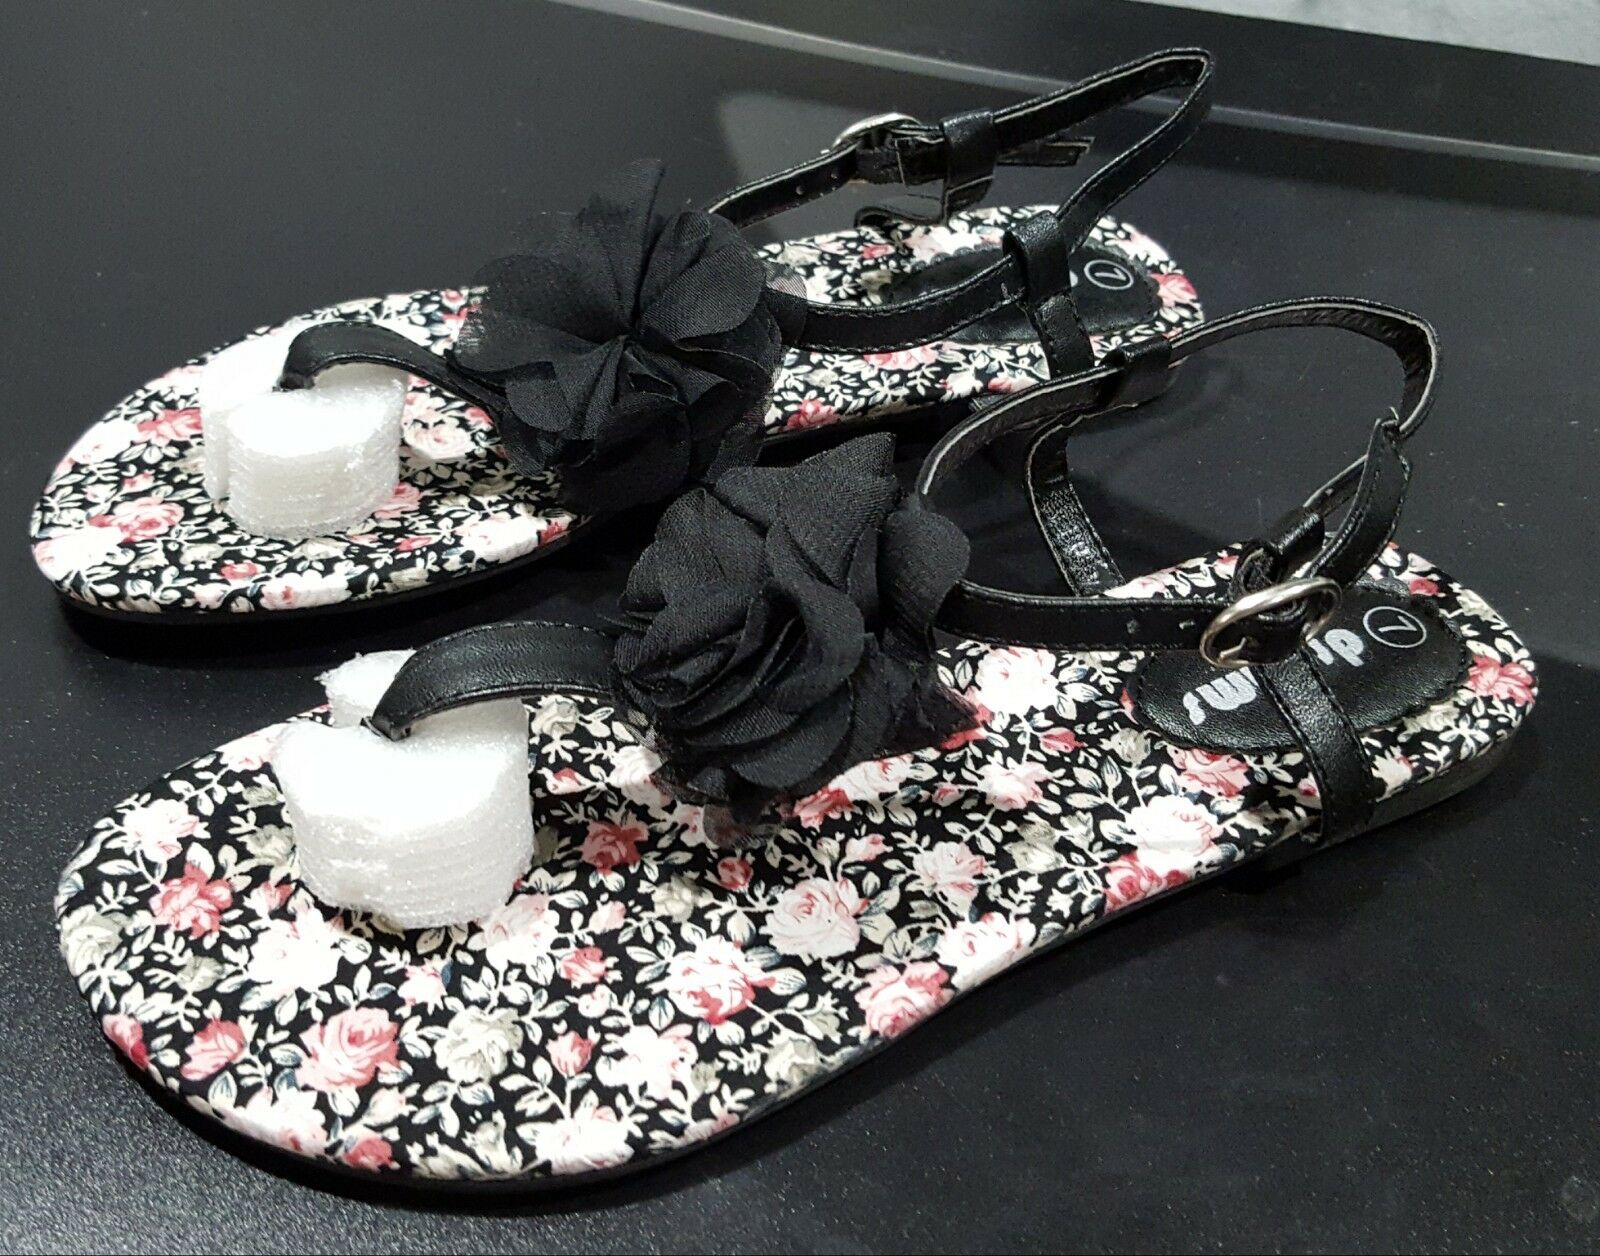 NEW DREAM BLACK PINK FLORAL THONG BUCKLE HEEL STRAP FARIS FLOWER ACCENT SANDAL 7